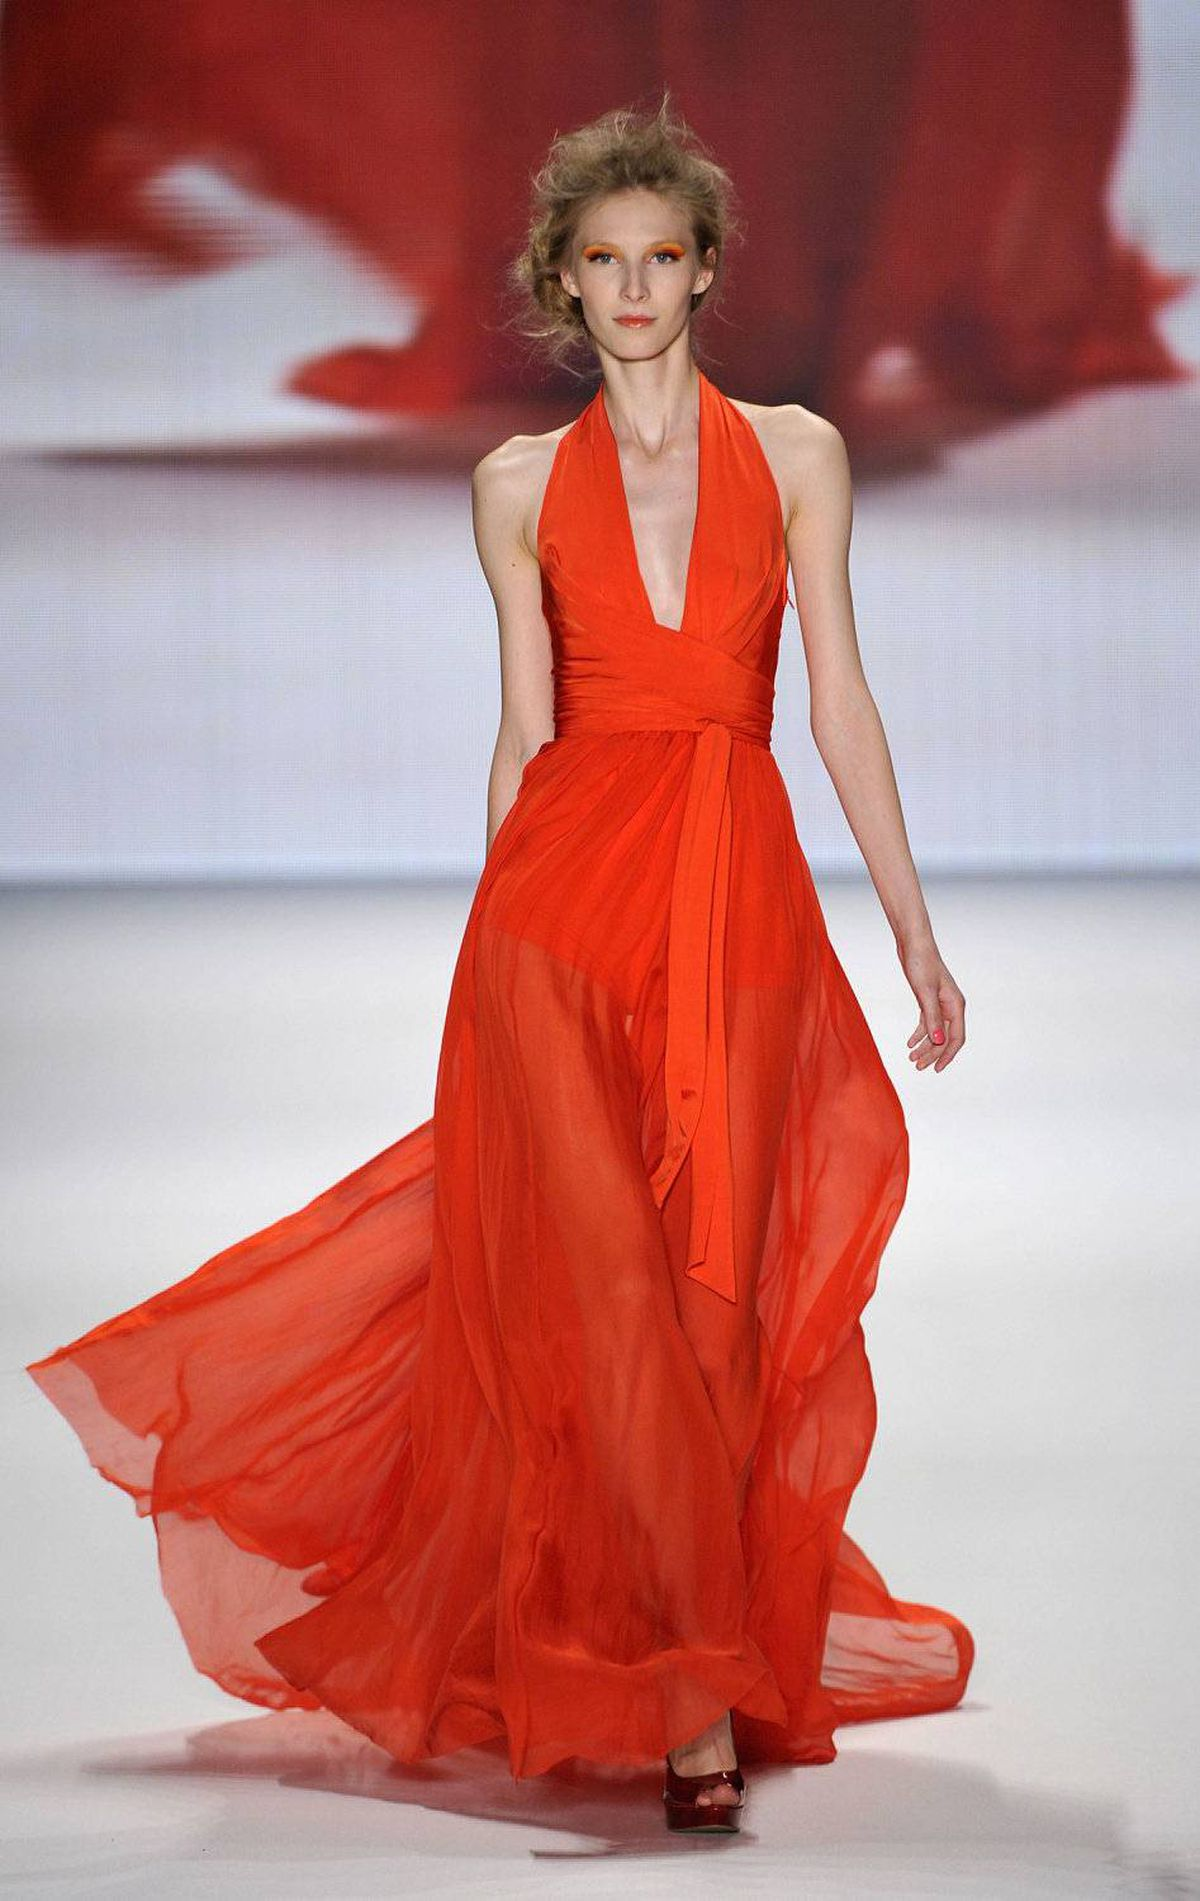 And then there are the pretty clothes. Oh so pretty. Even Simon Cowell would look like a million bucks in this number.